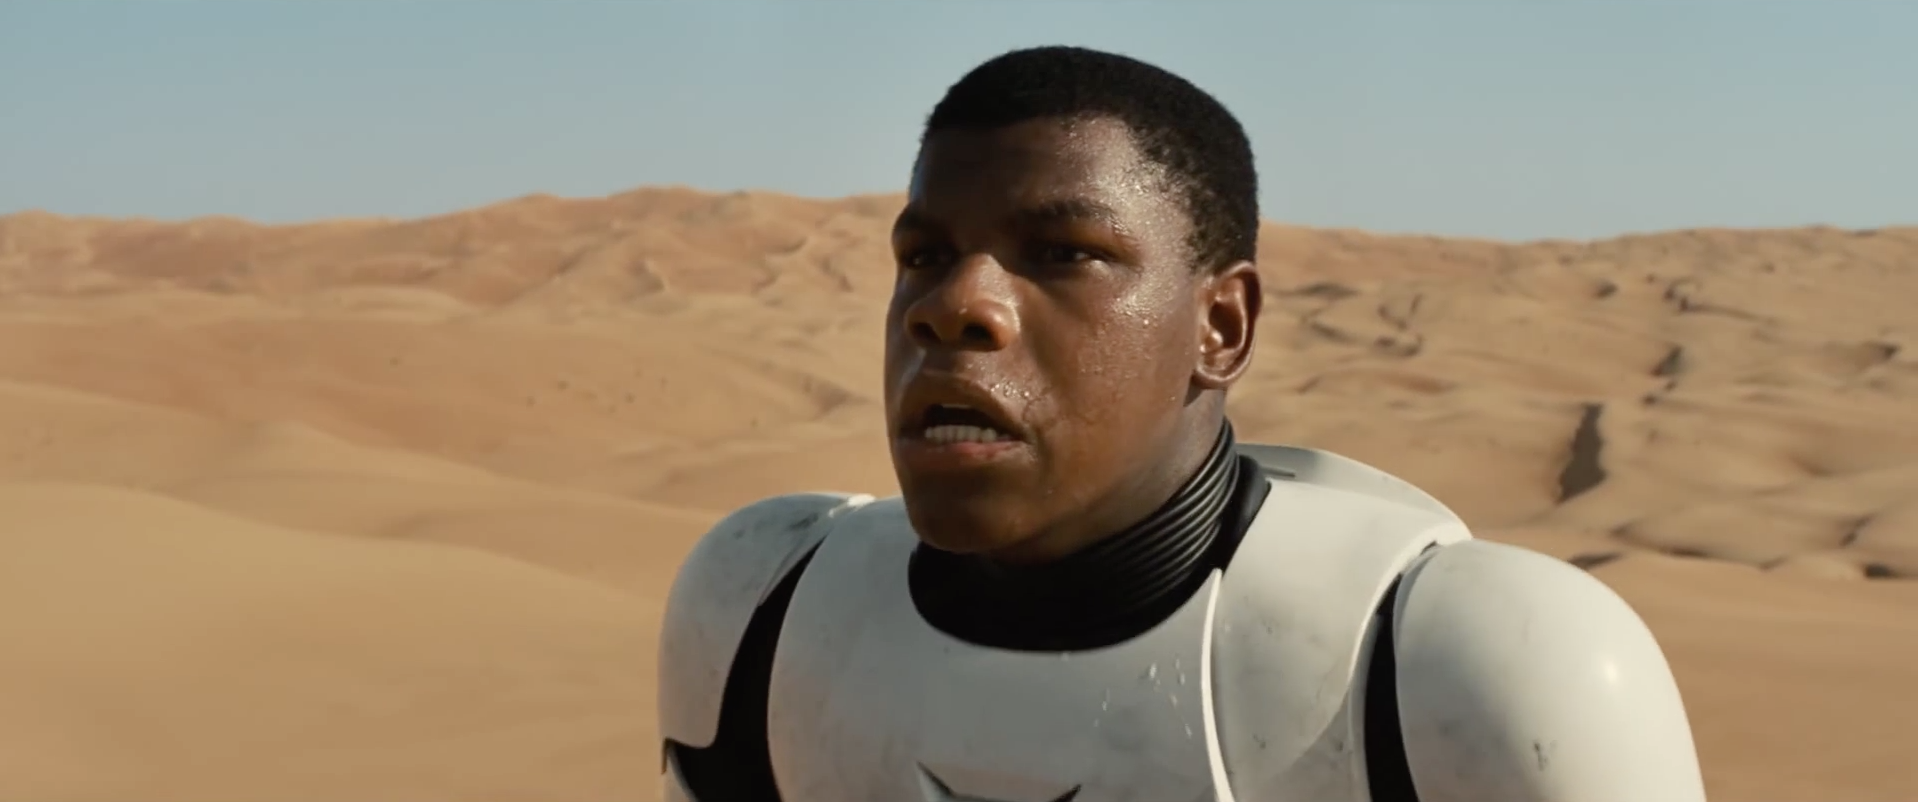 Let's uncover the mysteries in the Star Wars: The Force Awakens trailer